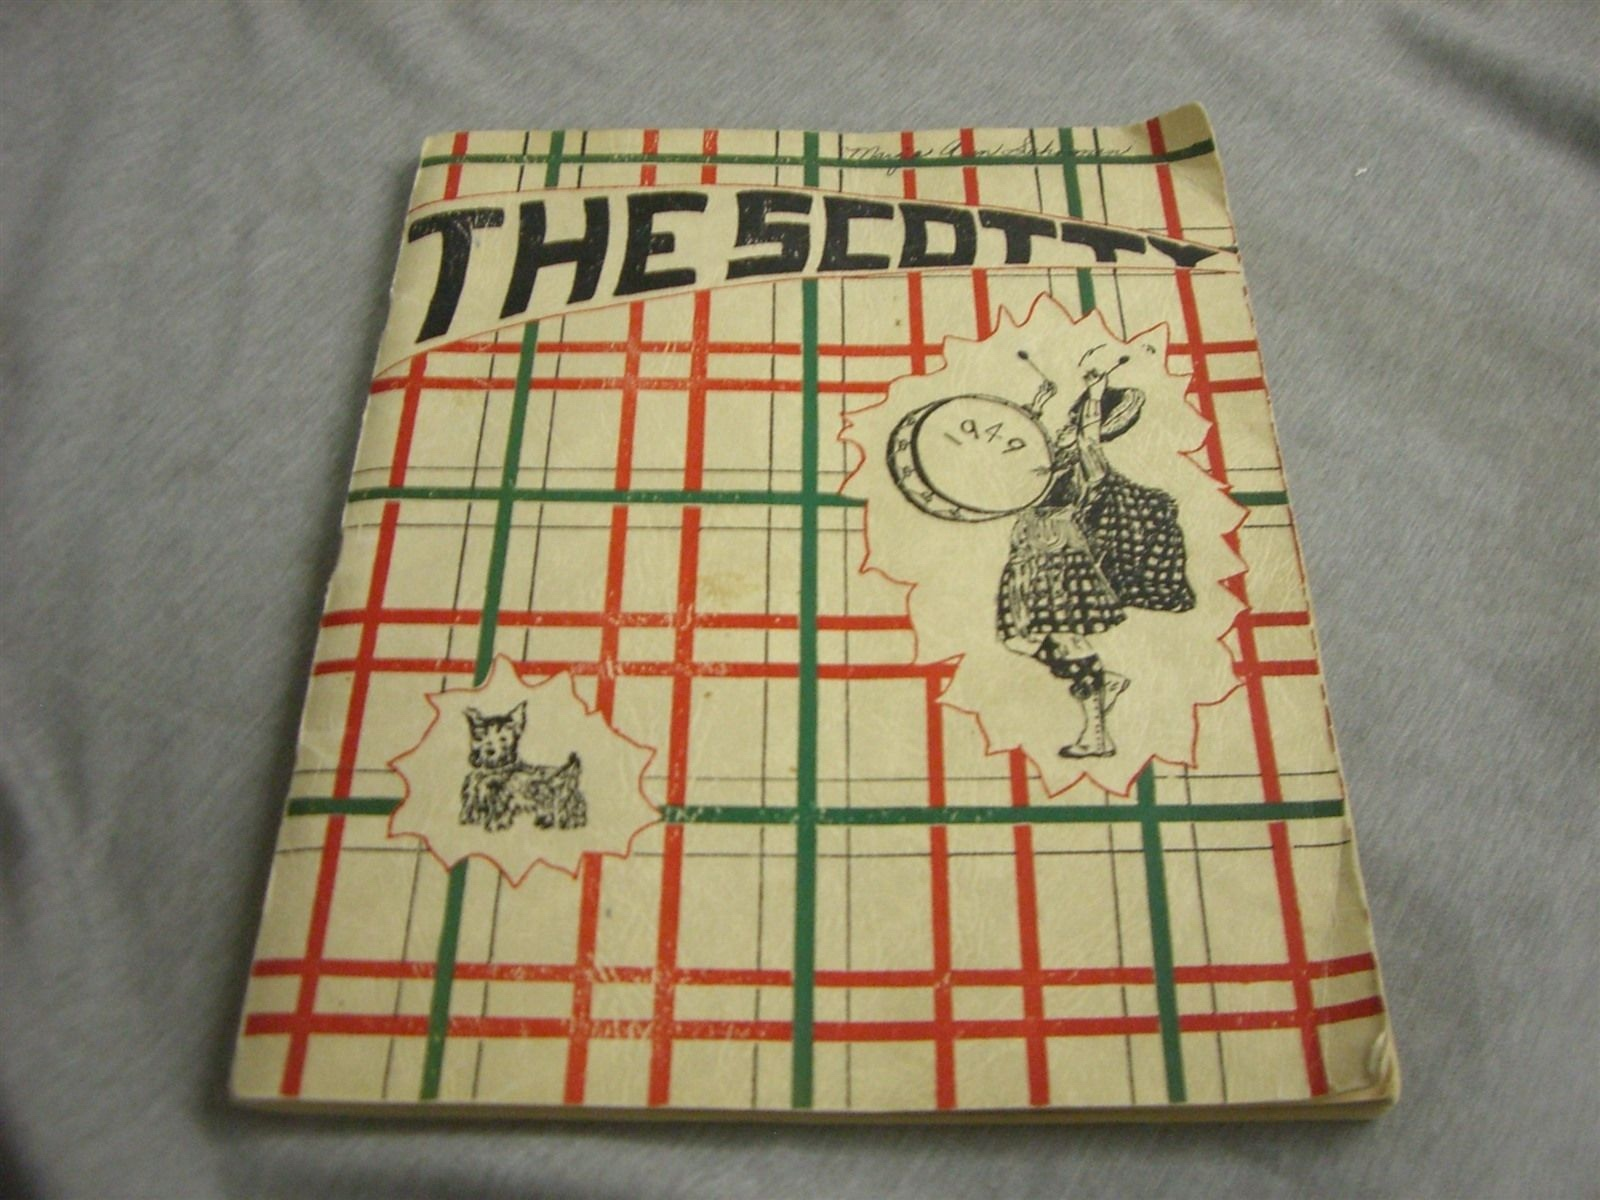 The Scotty, 1949 - (Glasgow Montana, Glasgow High School)